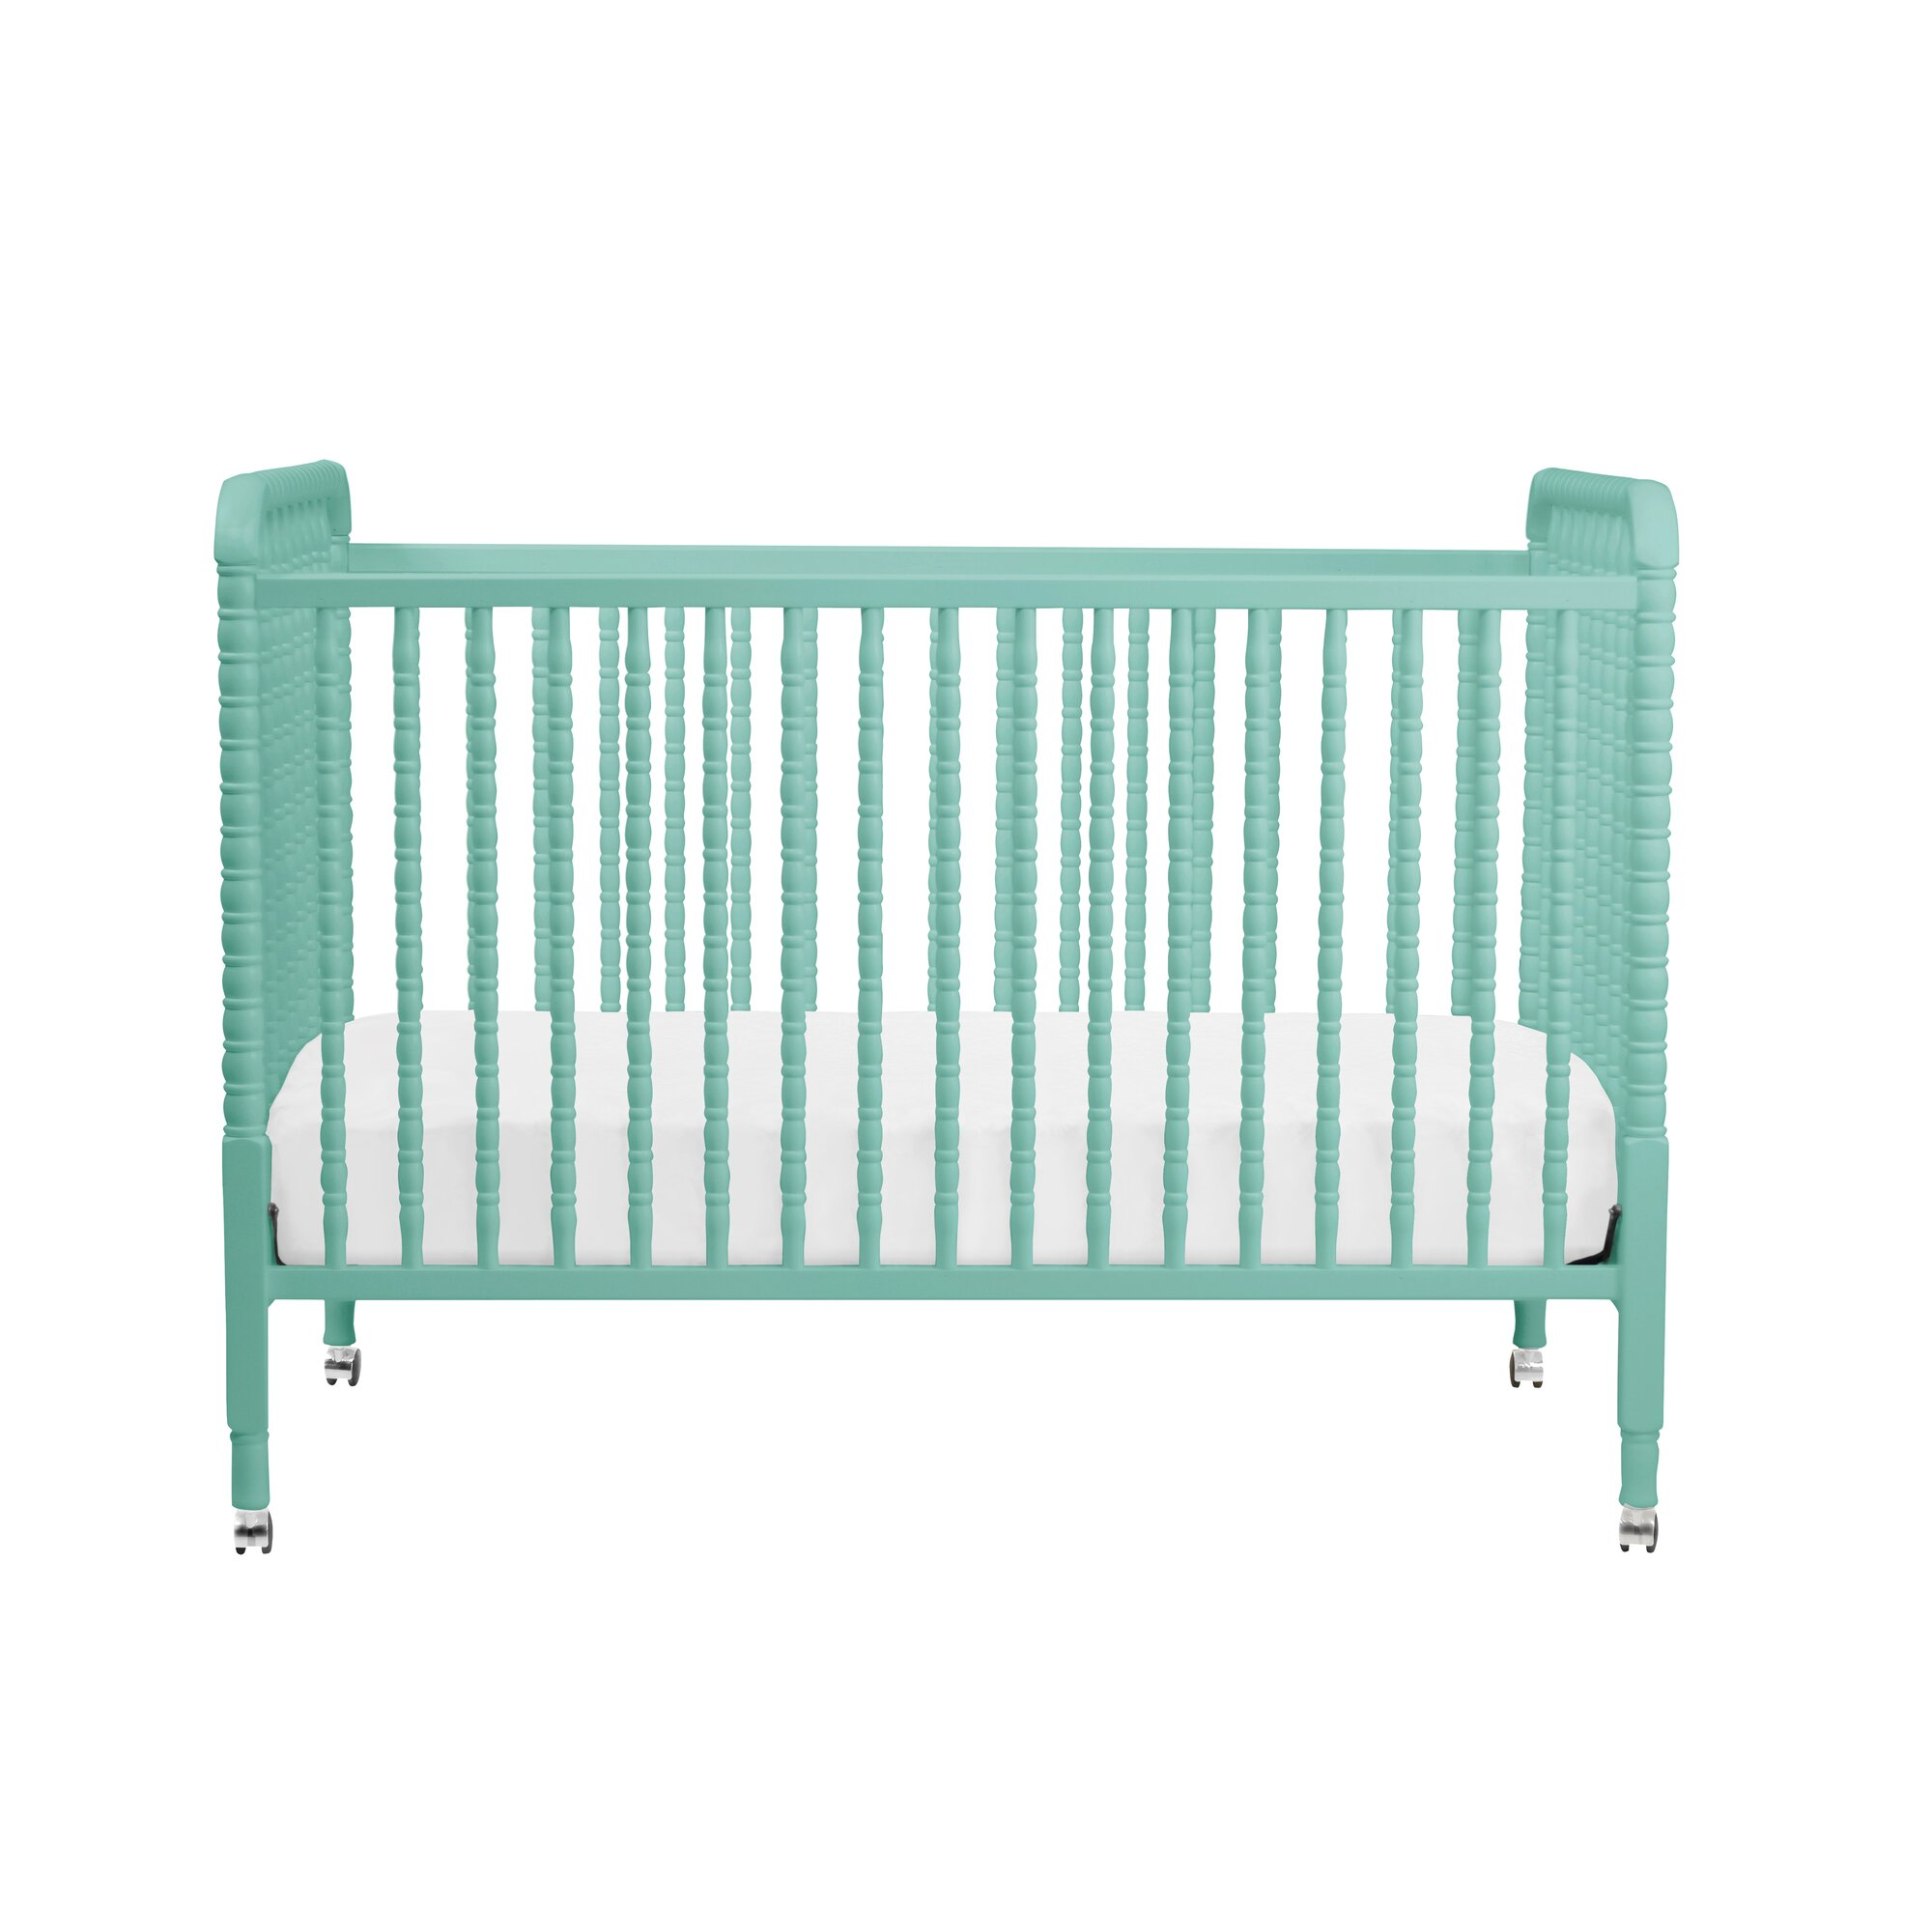 Bonavita crib for sale used - Jenny Lind 3in1 Convertible Crib With Conversion Kit